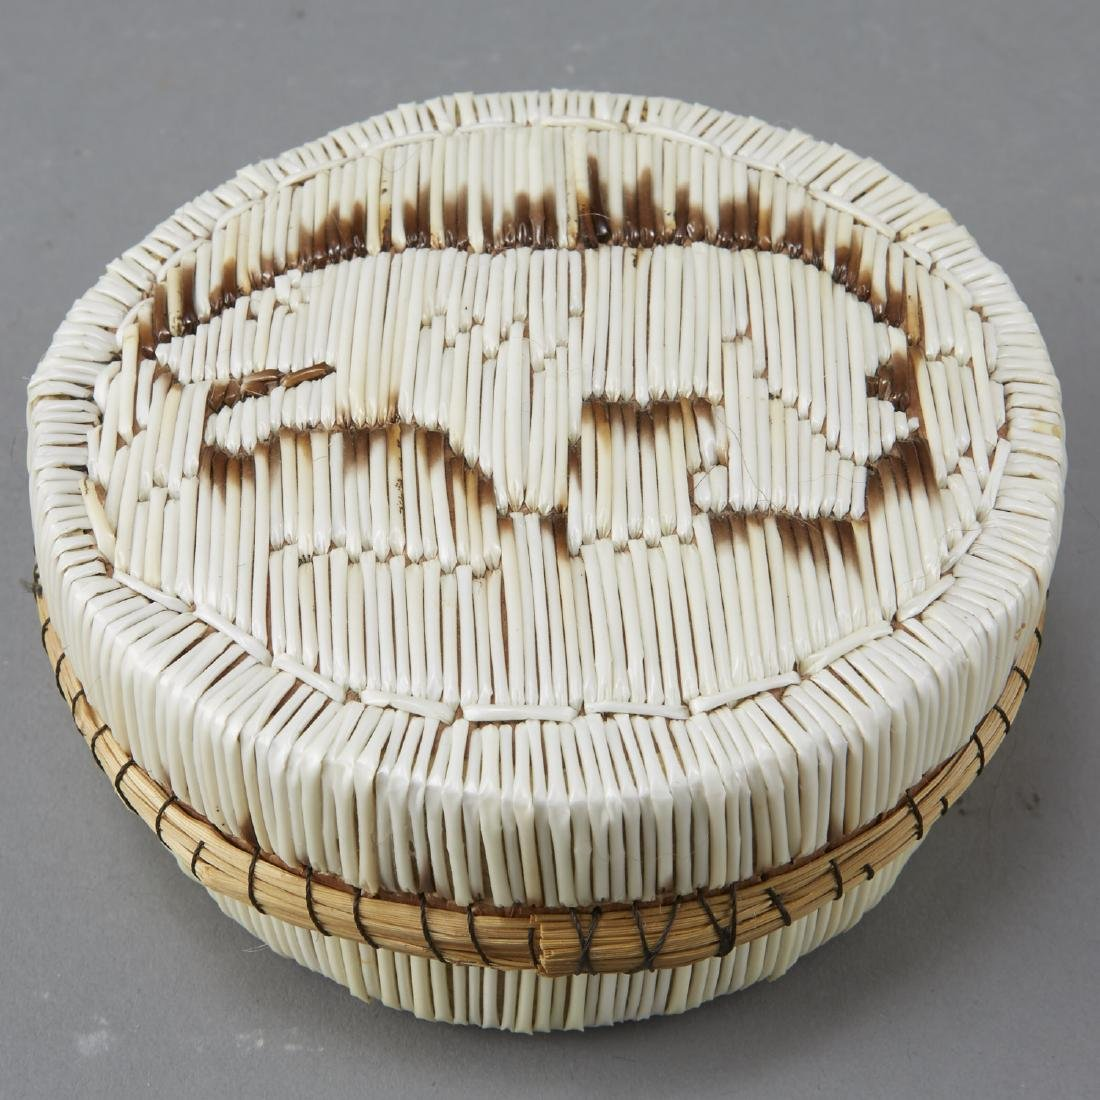 Group of 14 Native American Baskets - 2